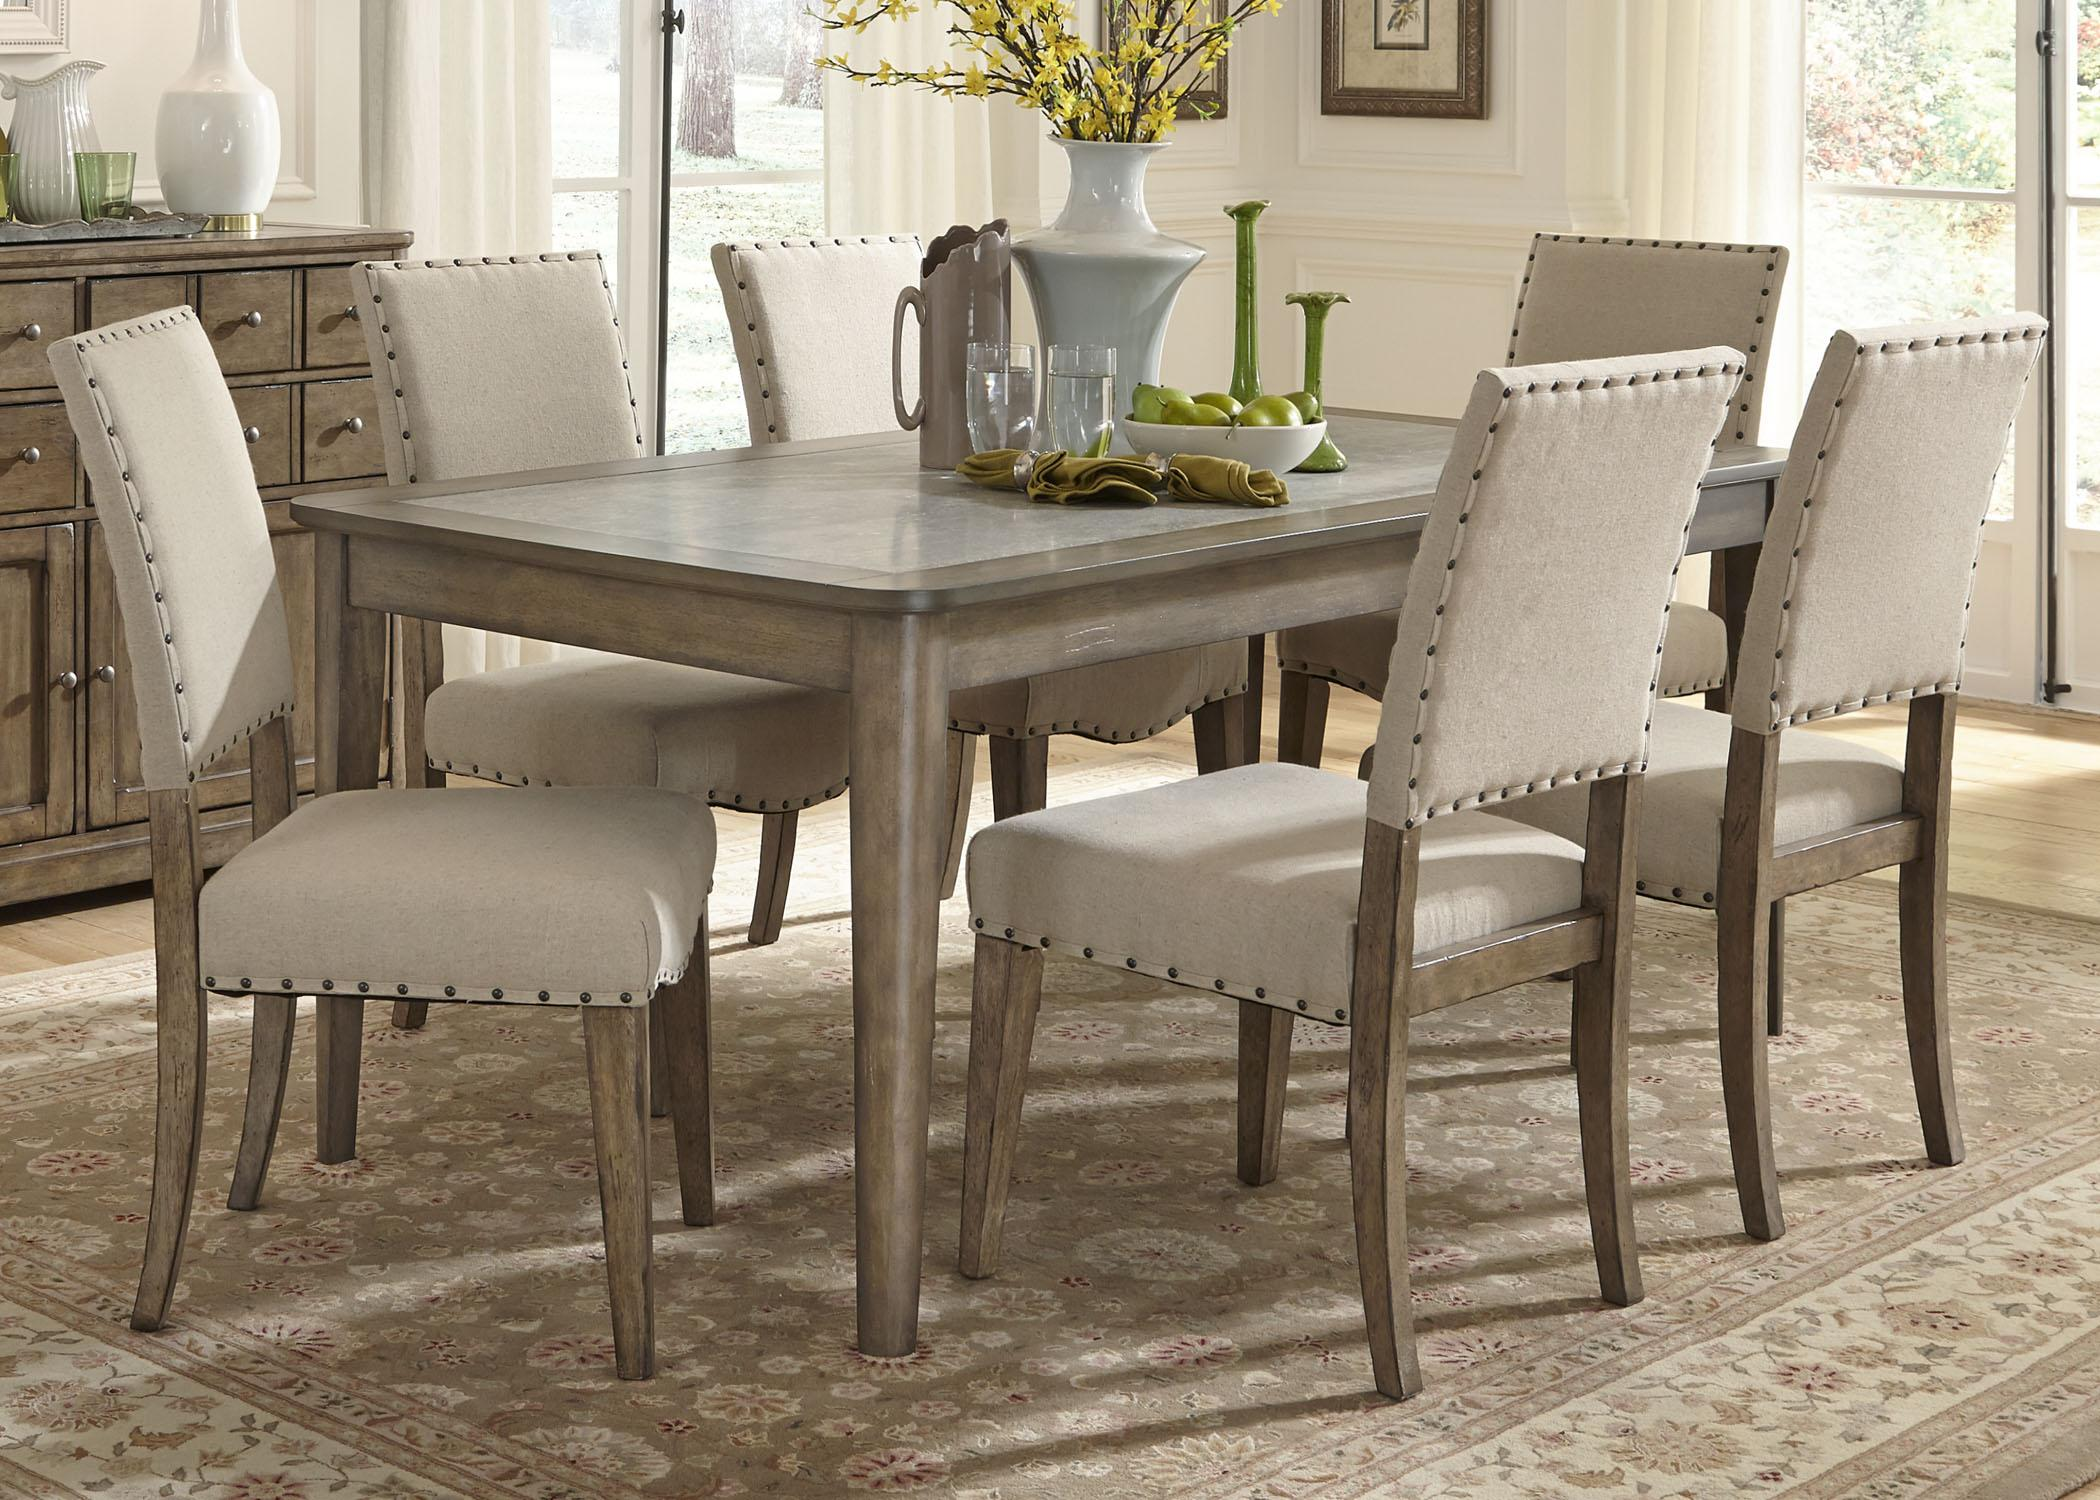 Liberty Furniture Weatherford Casual Dining Room Group  Johnny Janosik  Casual Dining Room Groups